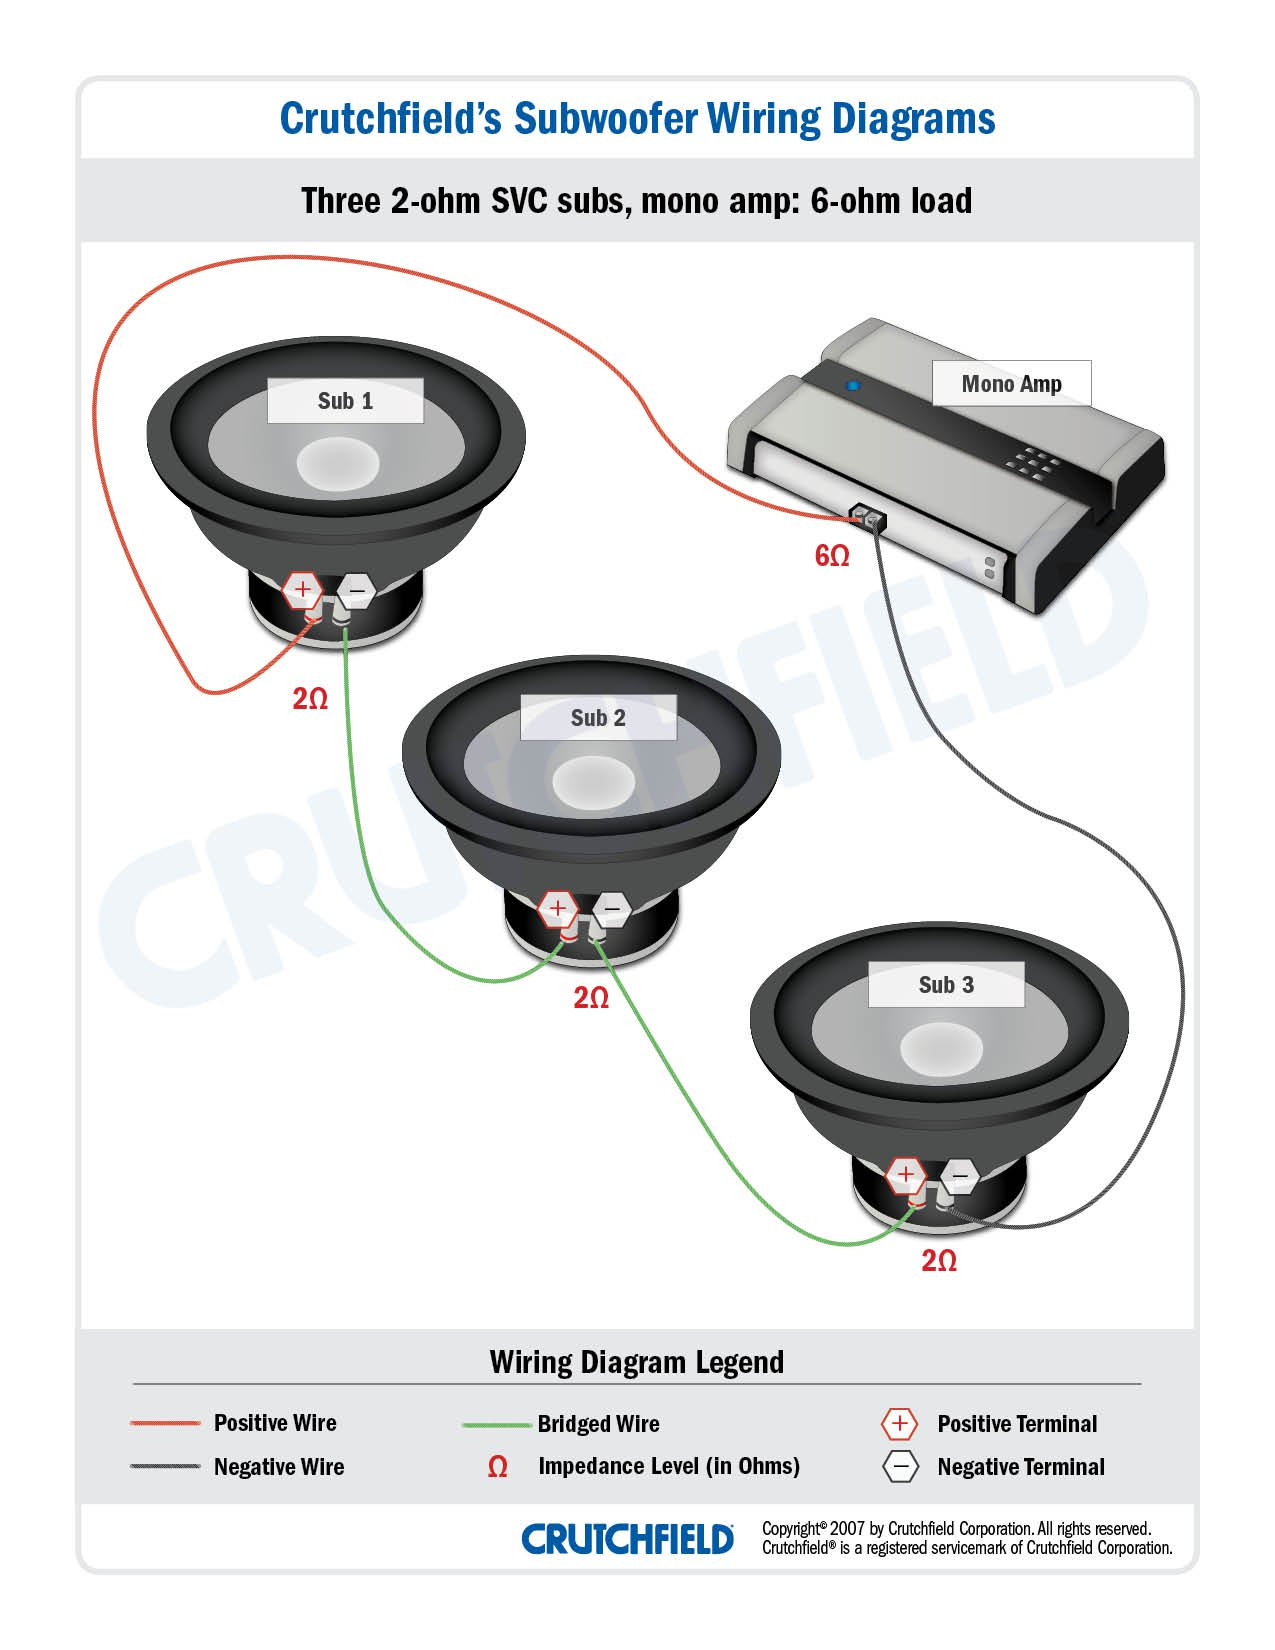 Subwoofer Wiring Diagrams — How To Wire Your Subs - Car Amp Wiring Diagram